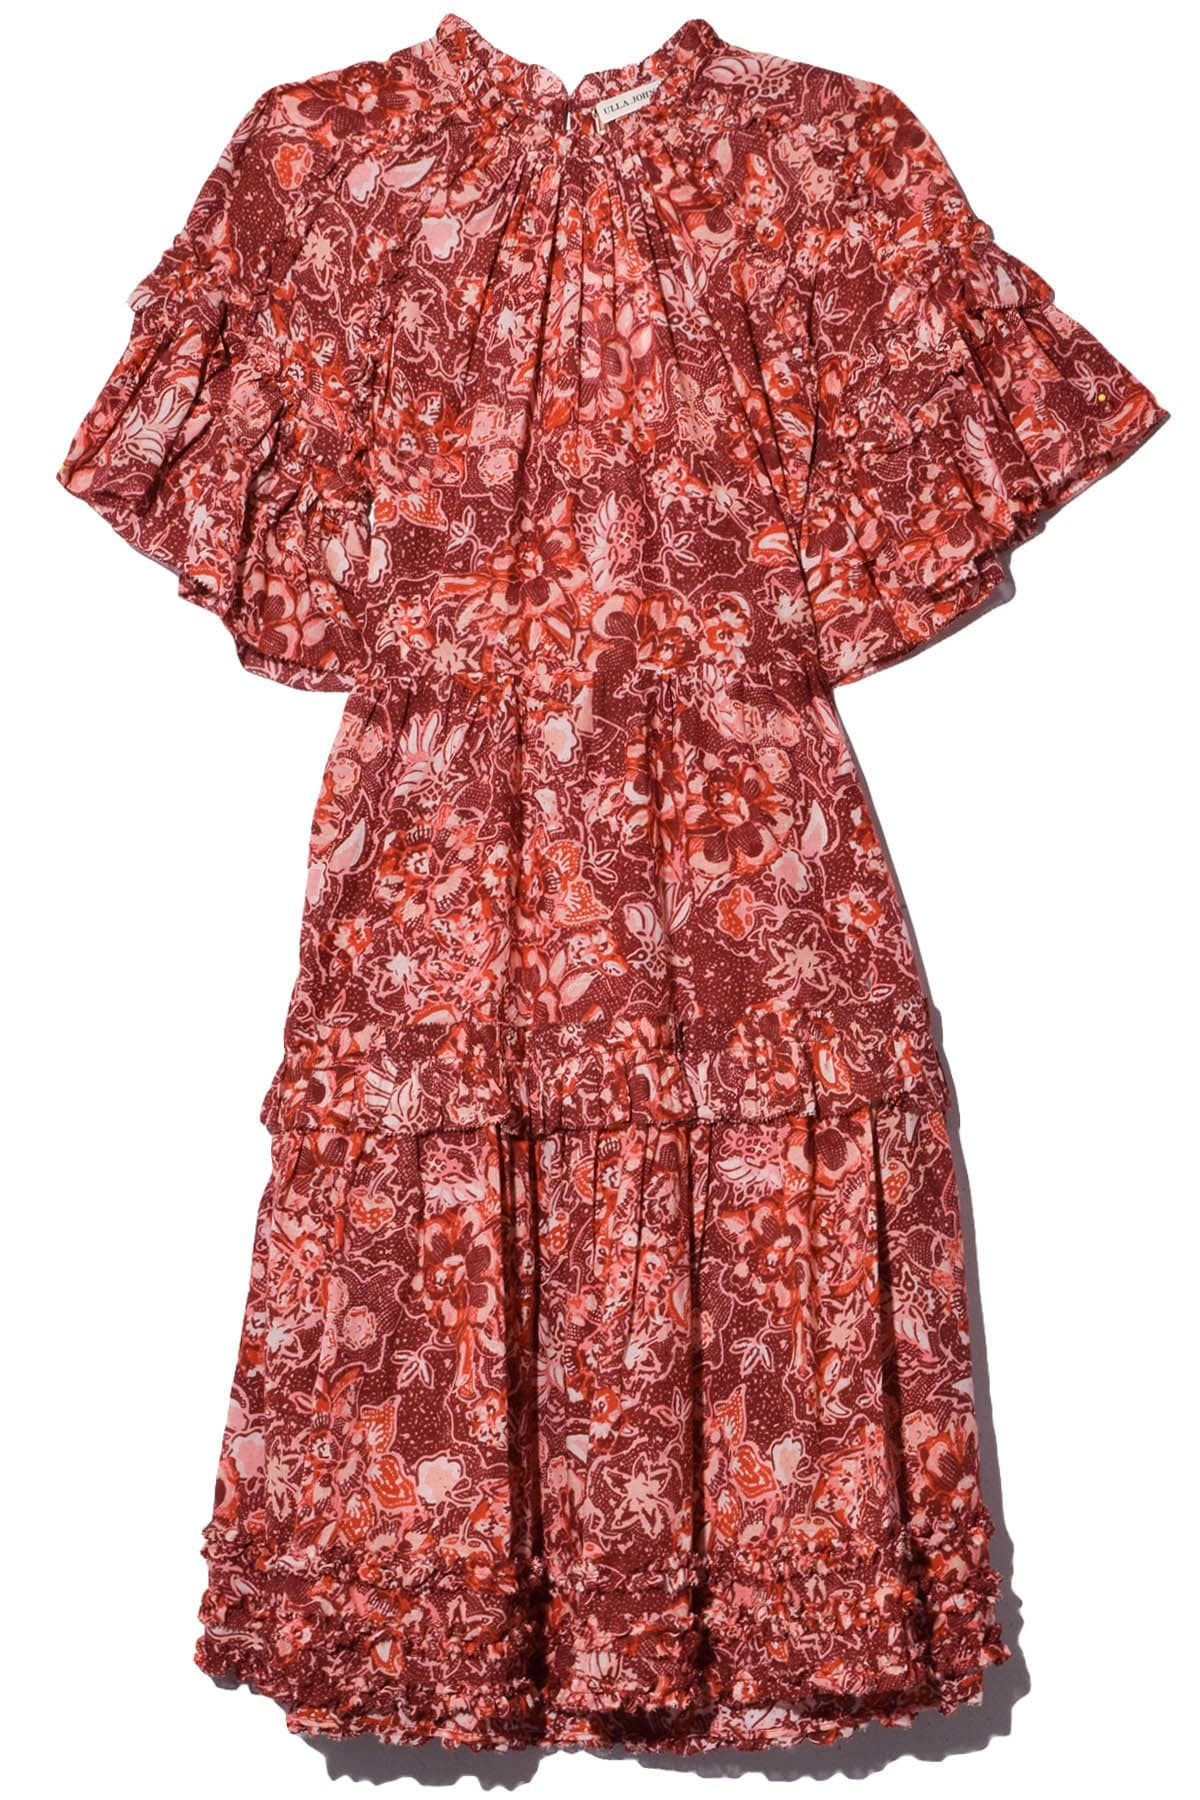 Cotton Tiered Floral Print Short Dress With Ruffles